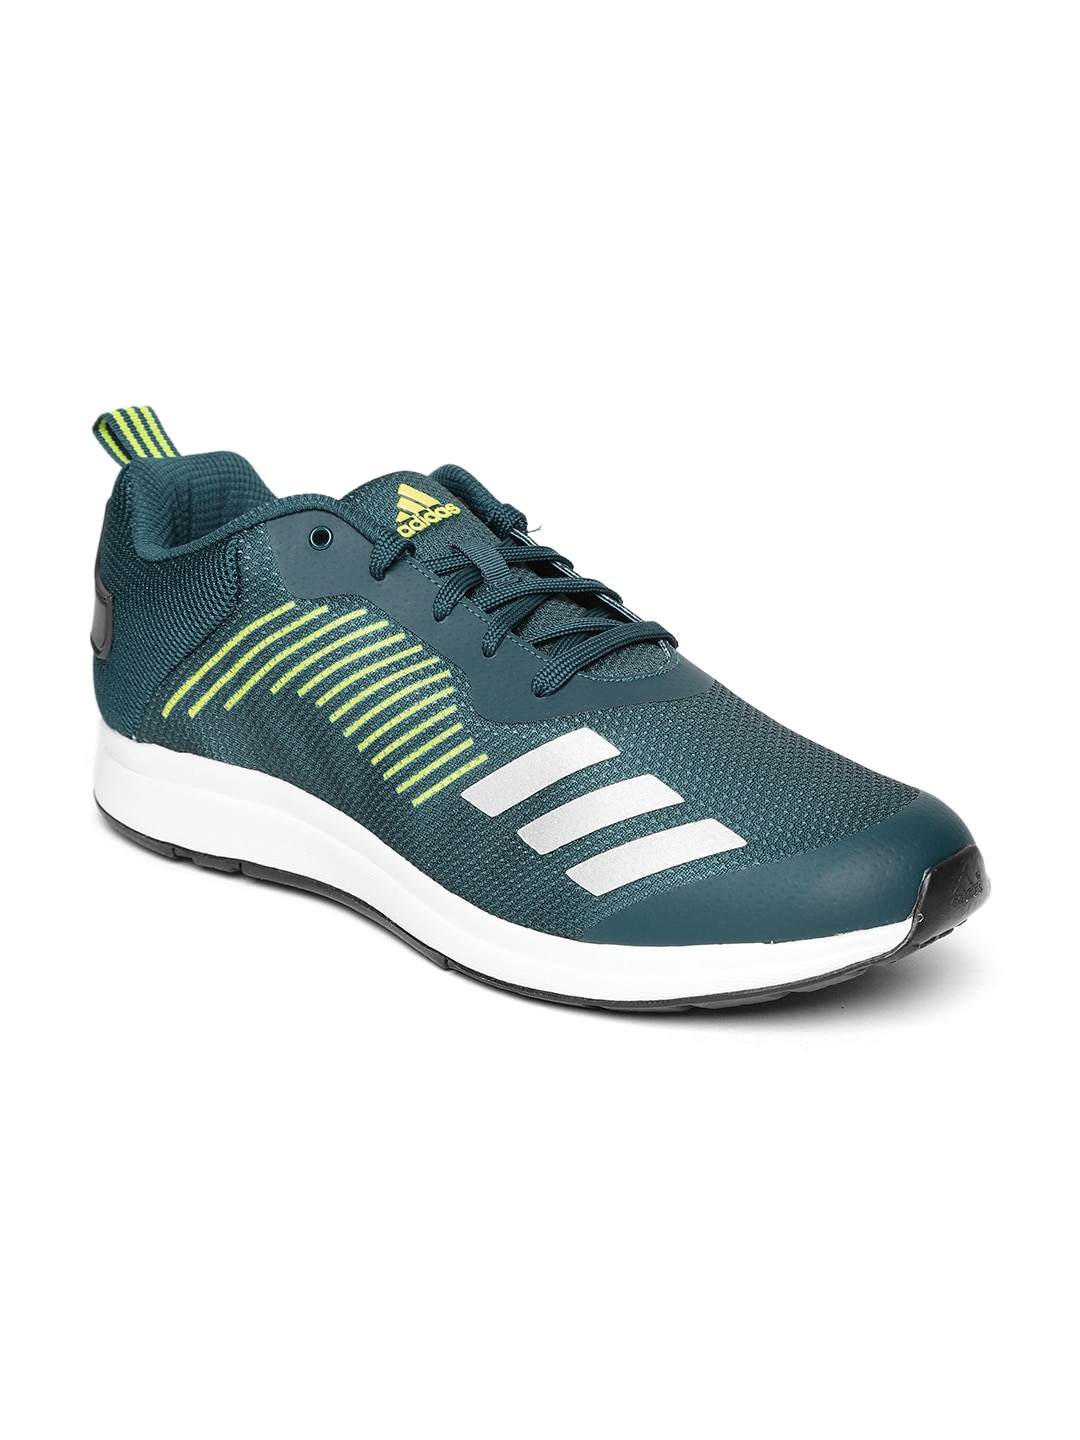 Sports Shoes for Men - Buy Men Sports Shoes Online in India - Myntra 374617a3ae9